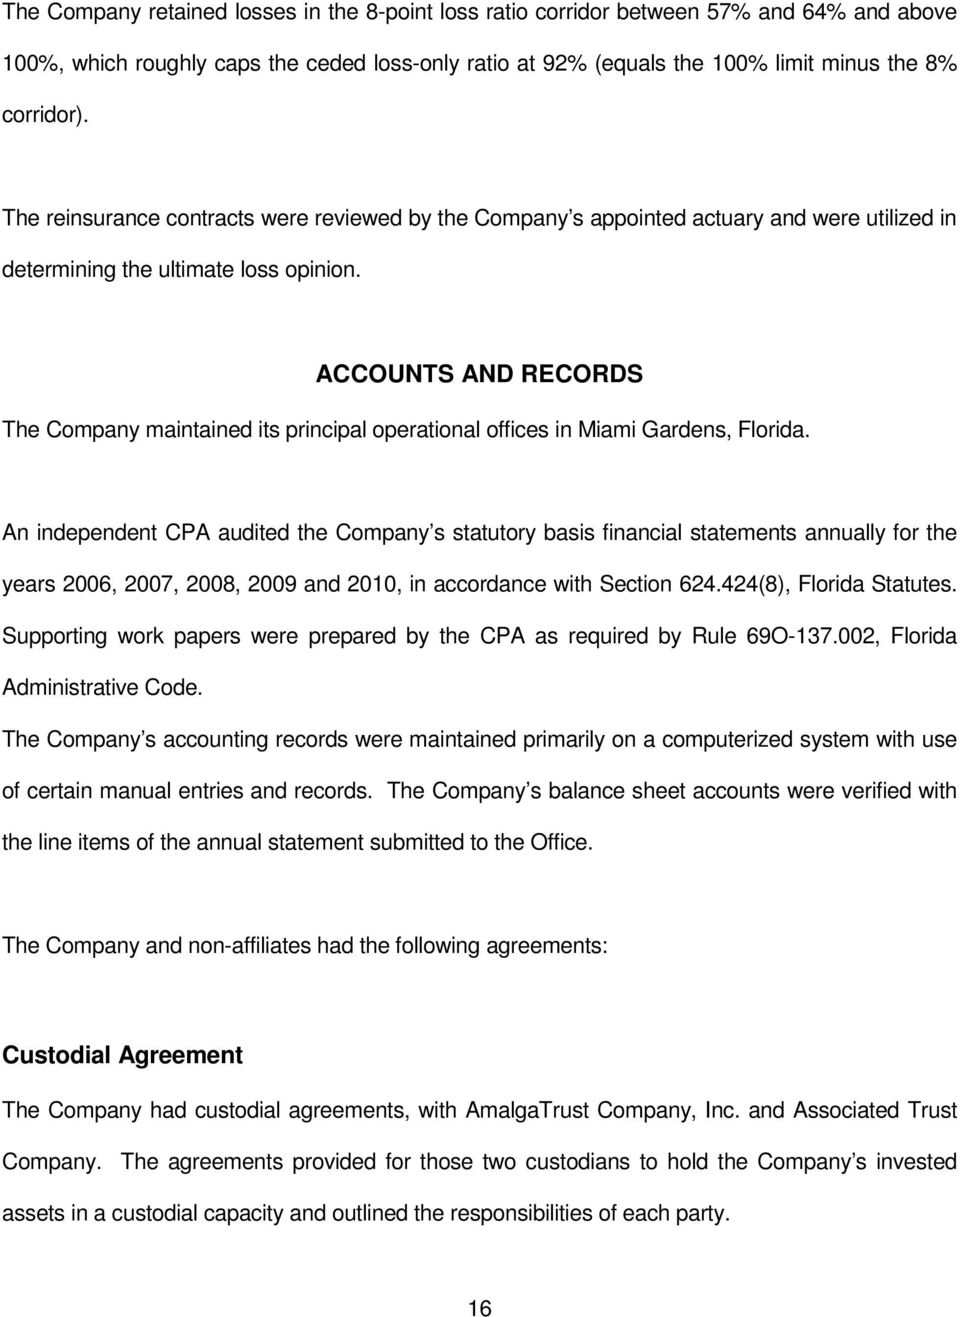 ACCOUNTS AND RECORDS The Company maintained its principal operational offices in Miami Gardens, Florida.